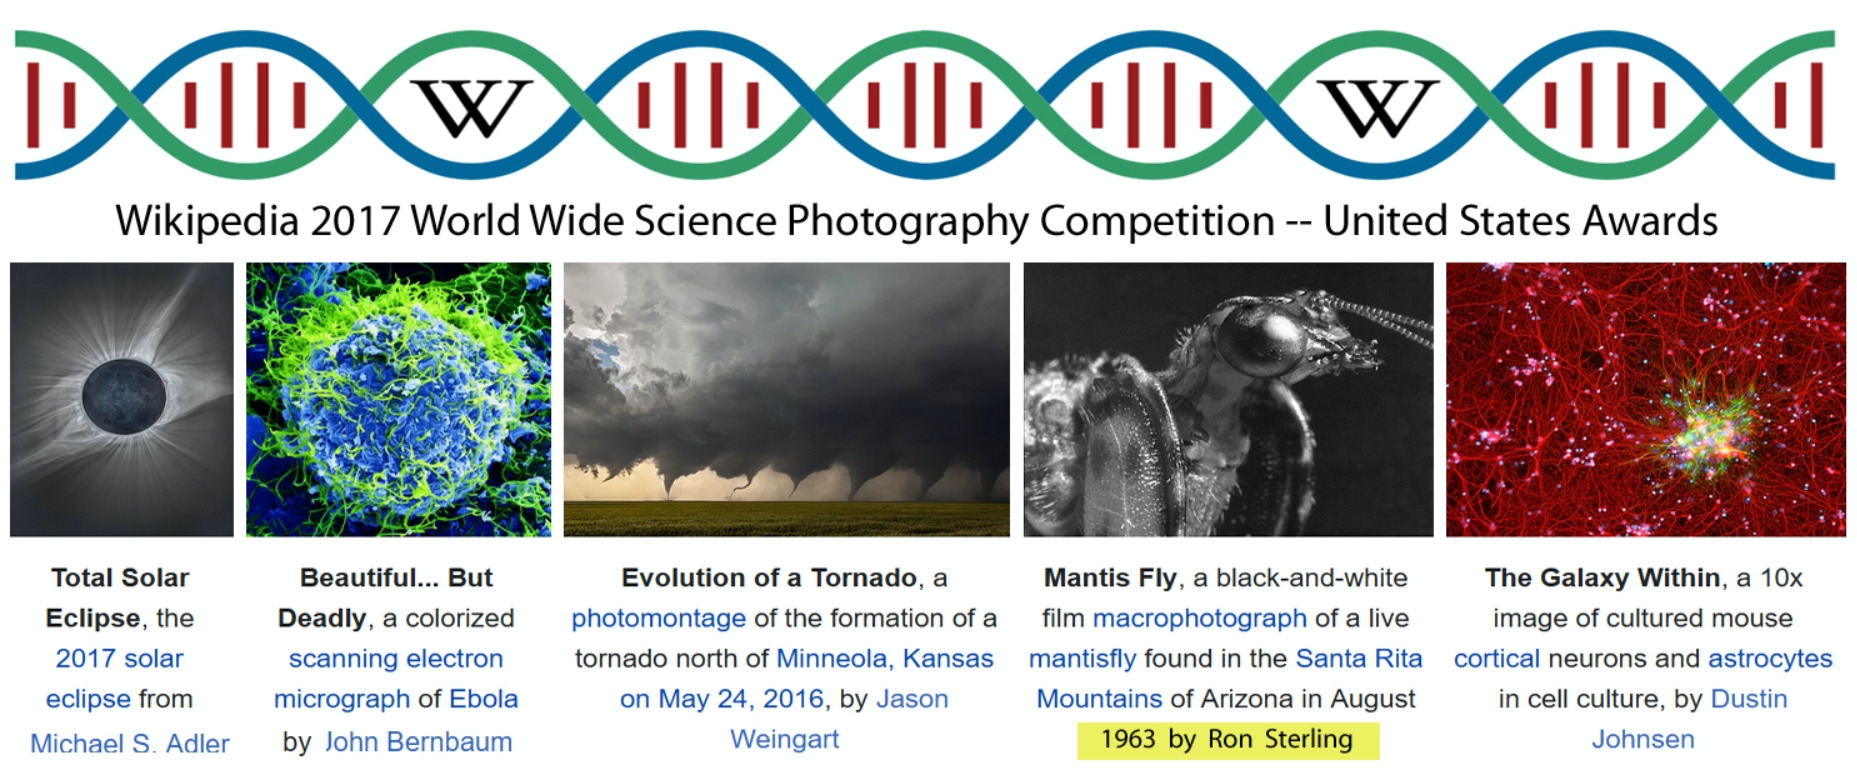 2017 Award for United States Section of World Wide Wikimedia Science Photography Contest